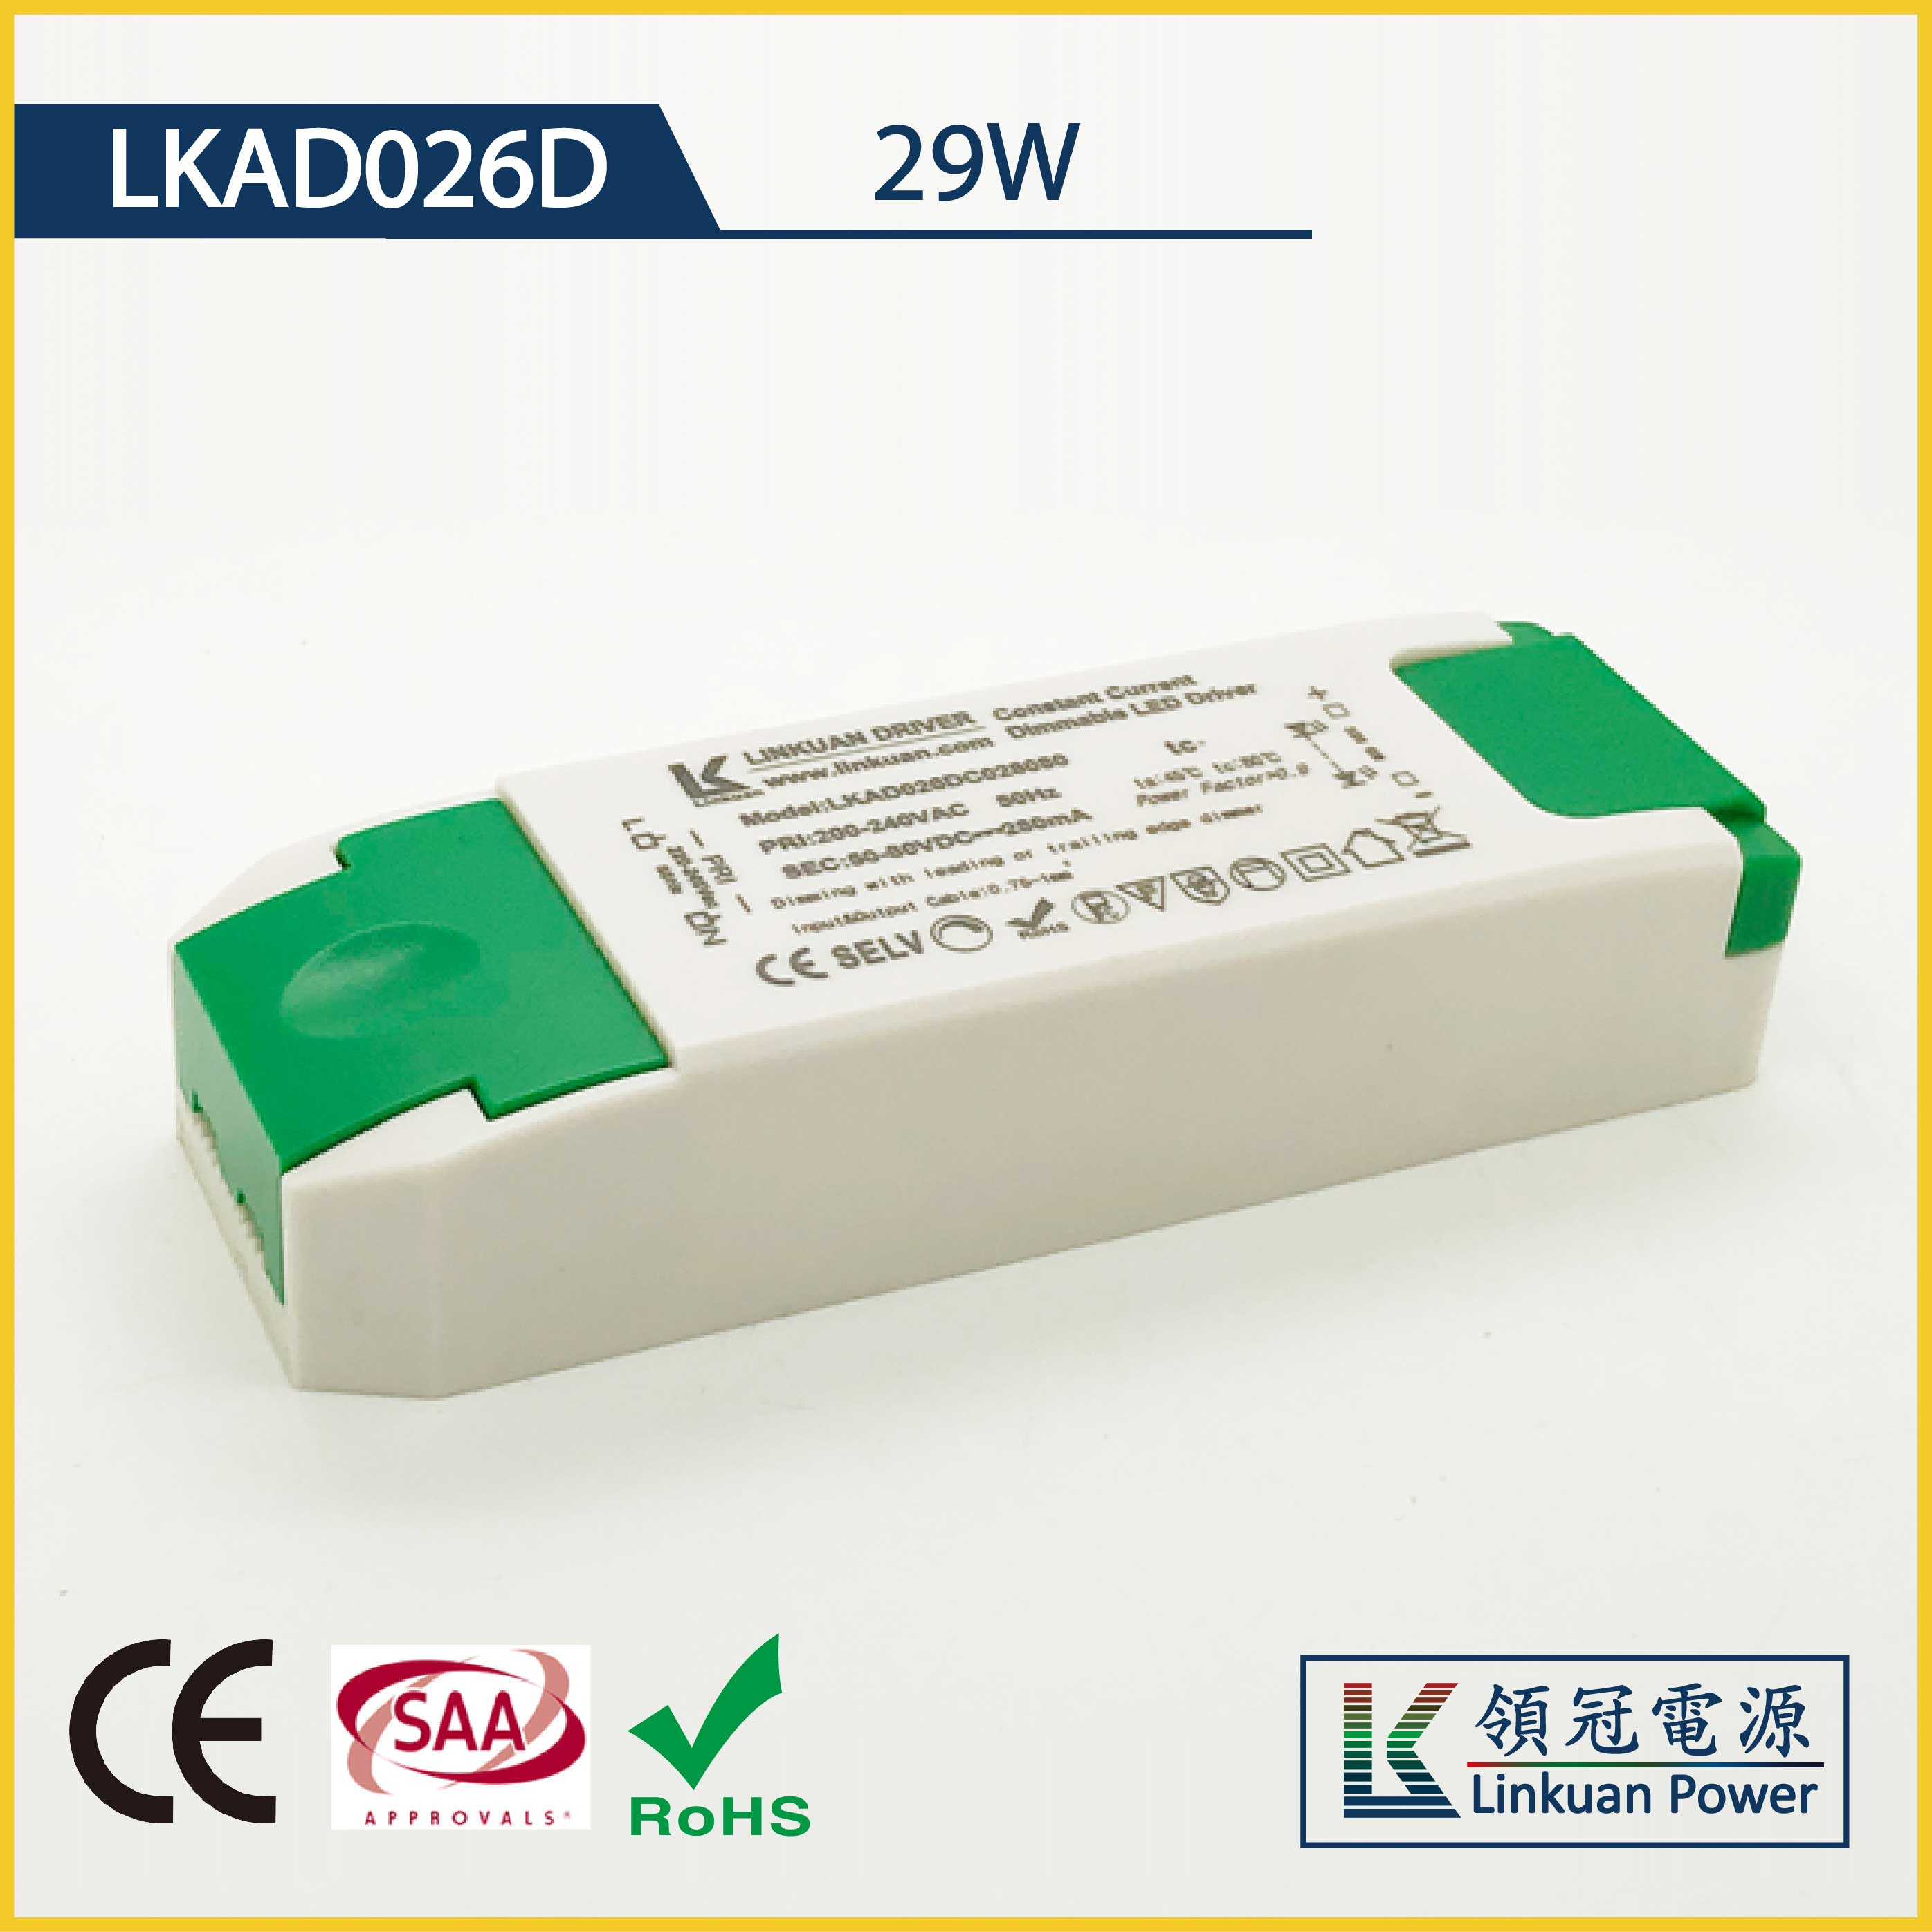 LKAD026D 29W 25-42V 700mA Dimmable LED drivers